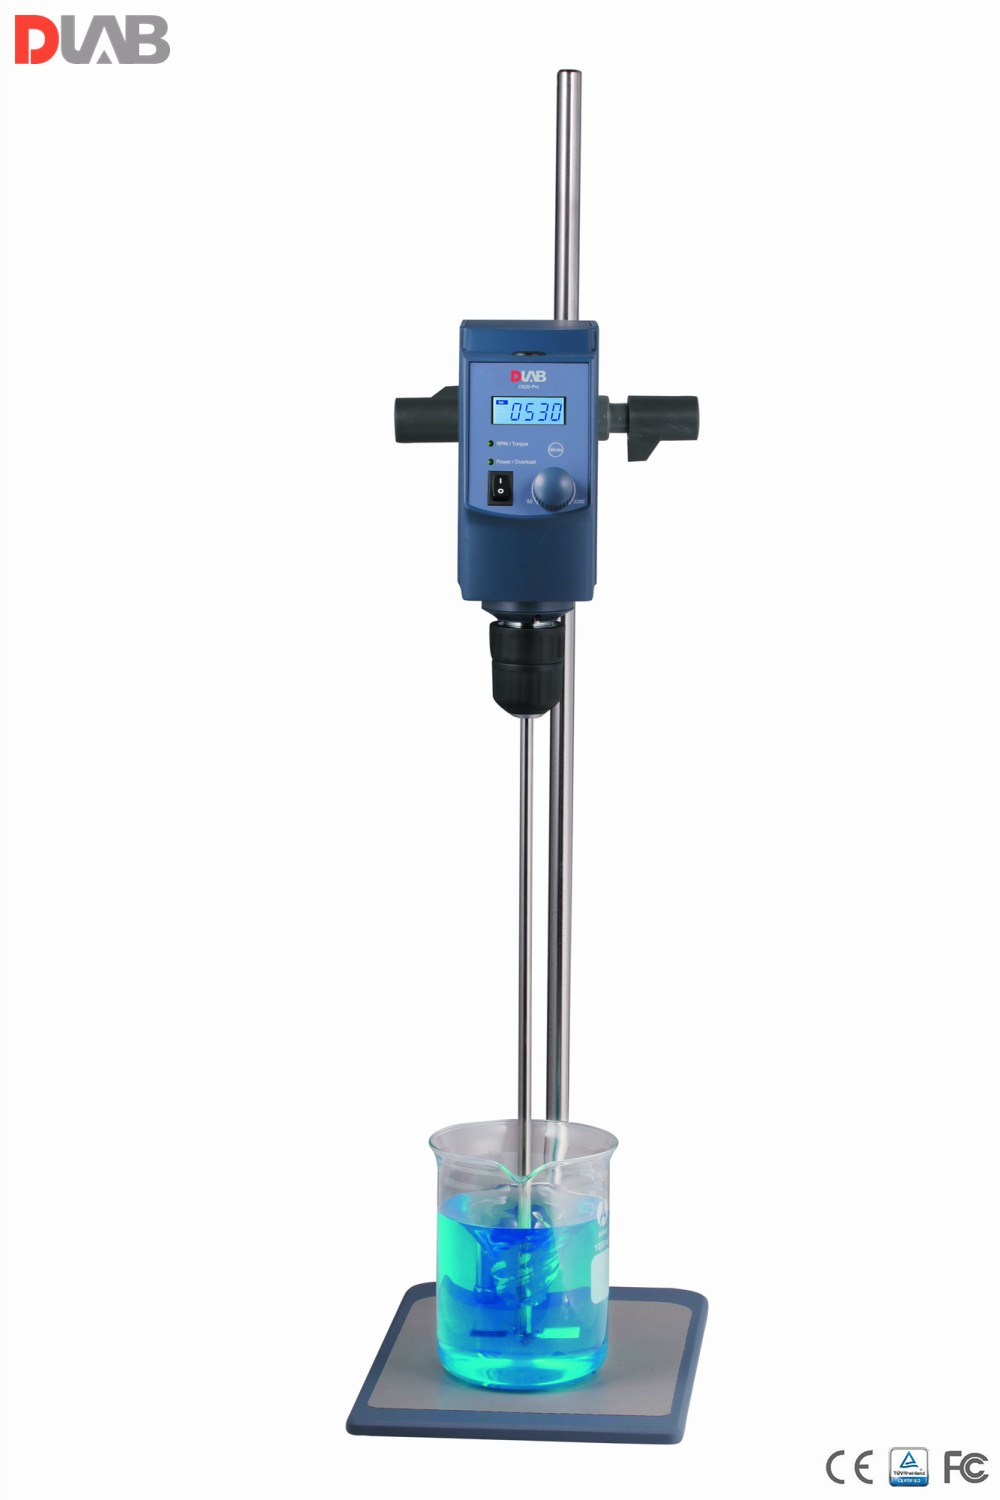 Overhead Stirrer OS20-Pro LCD Digital Enhanced Magnetic Stirrer Max.stirring Quantity 20L With Plate Stand & Propeller Stirrer